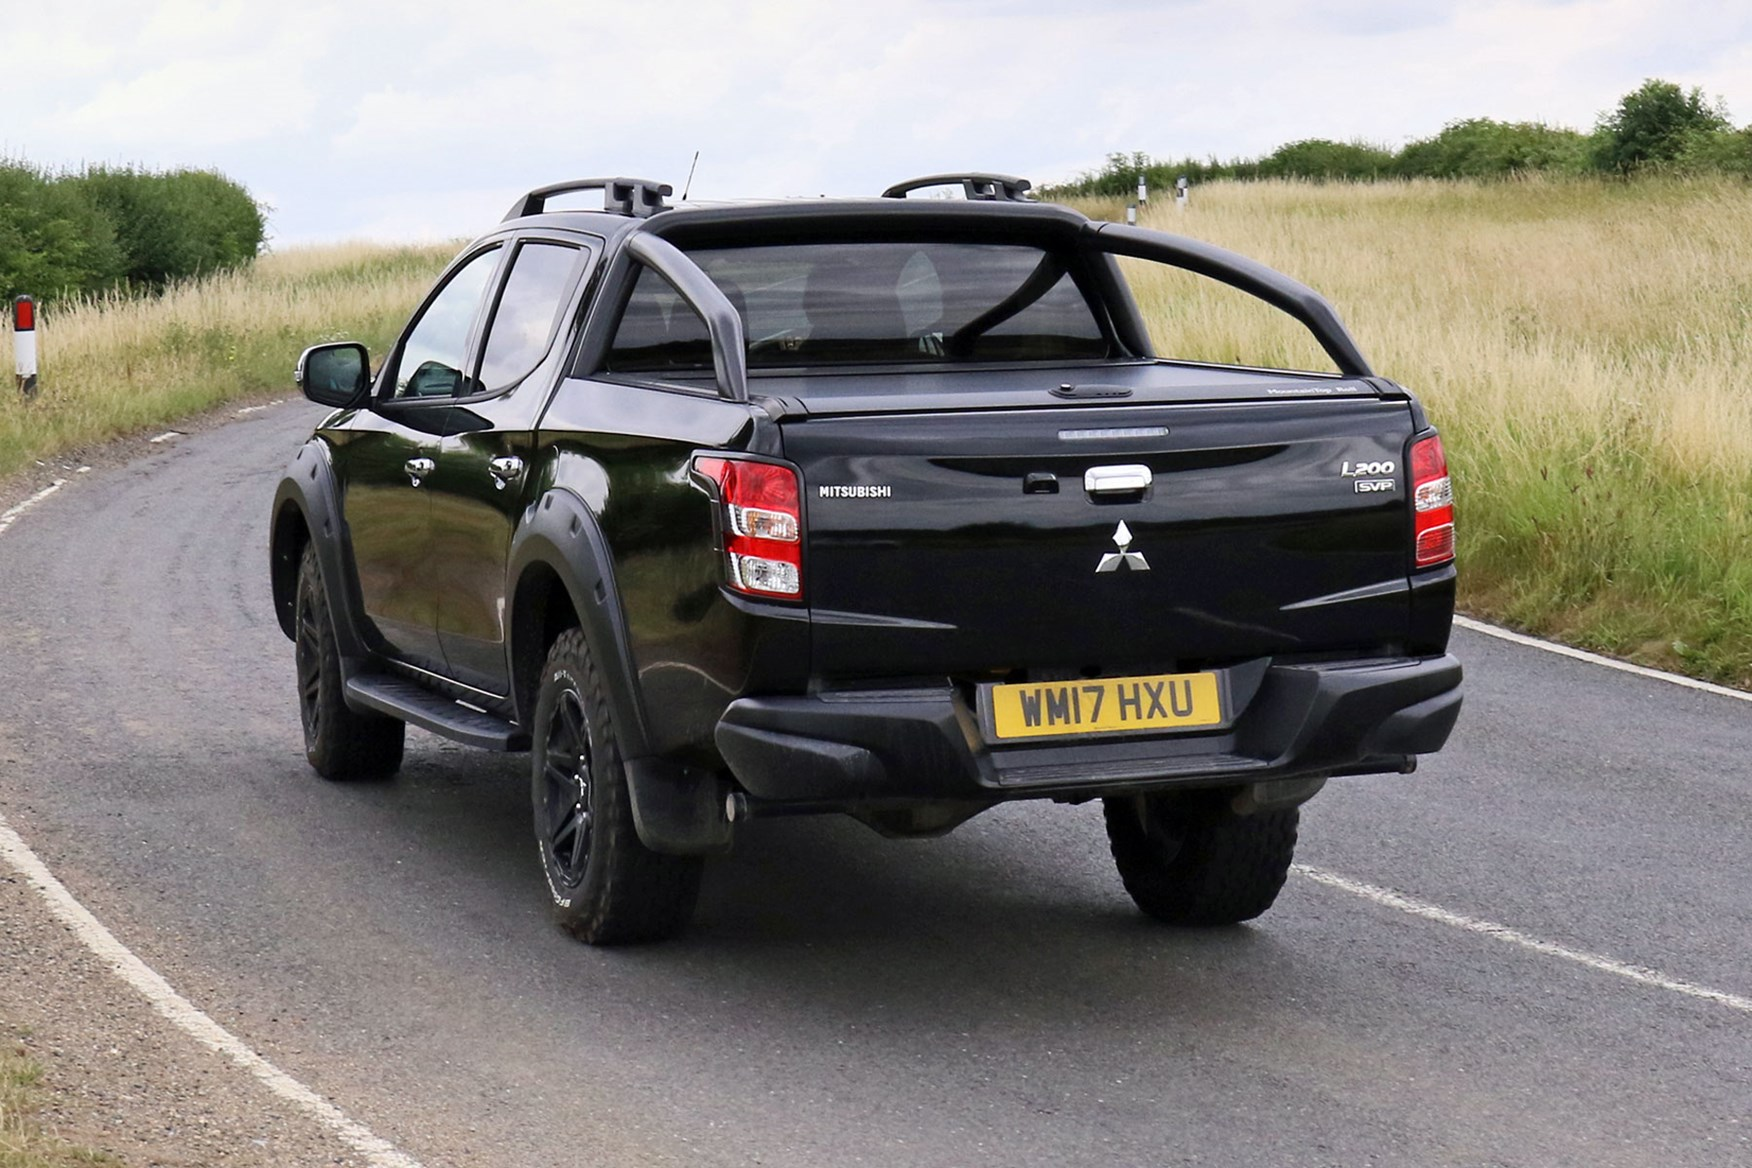 Mitsubishi L200 Barbarian SVP review - rear view, driving on country road